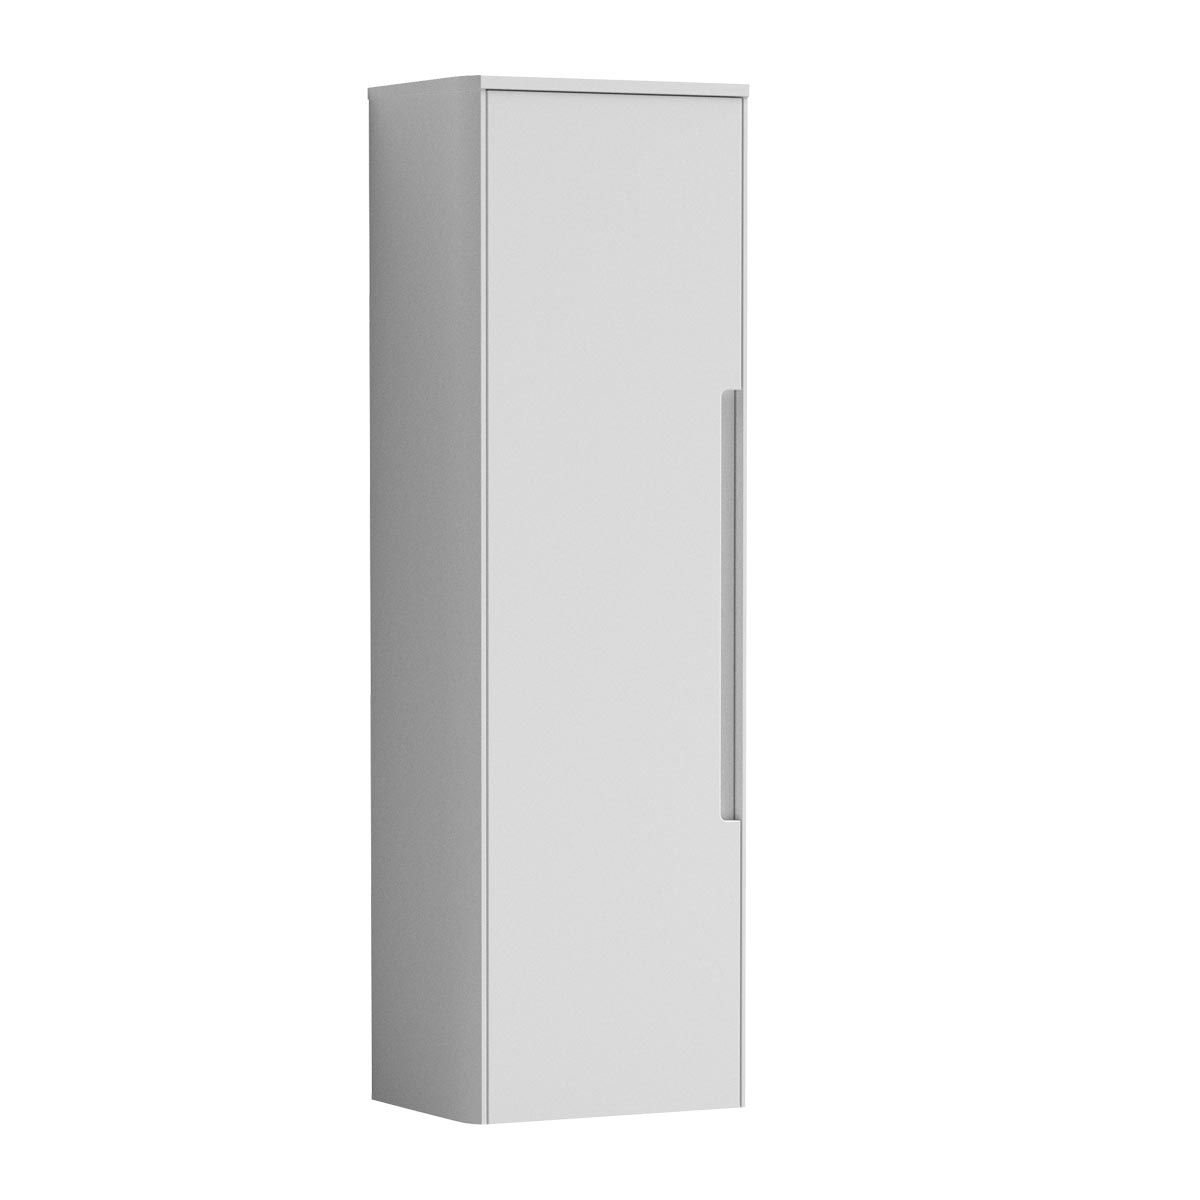 Nuie Elbe White Wall Hung Tall Unit 350mm